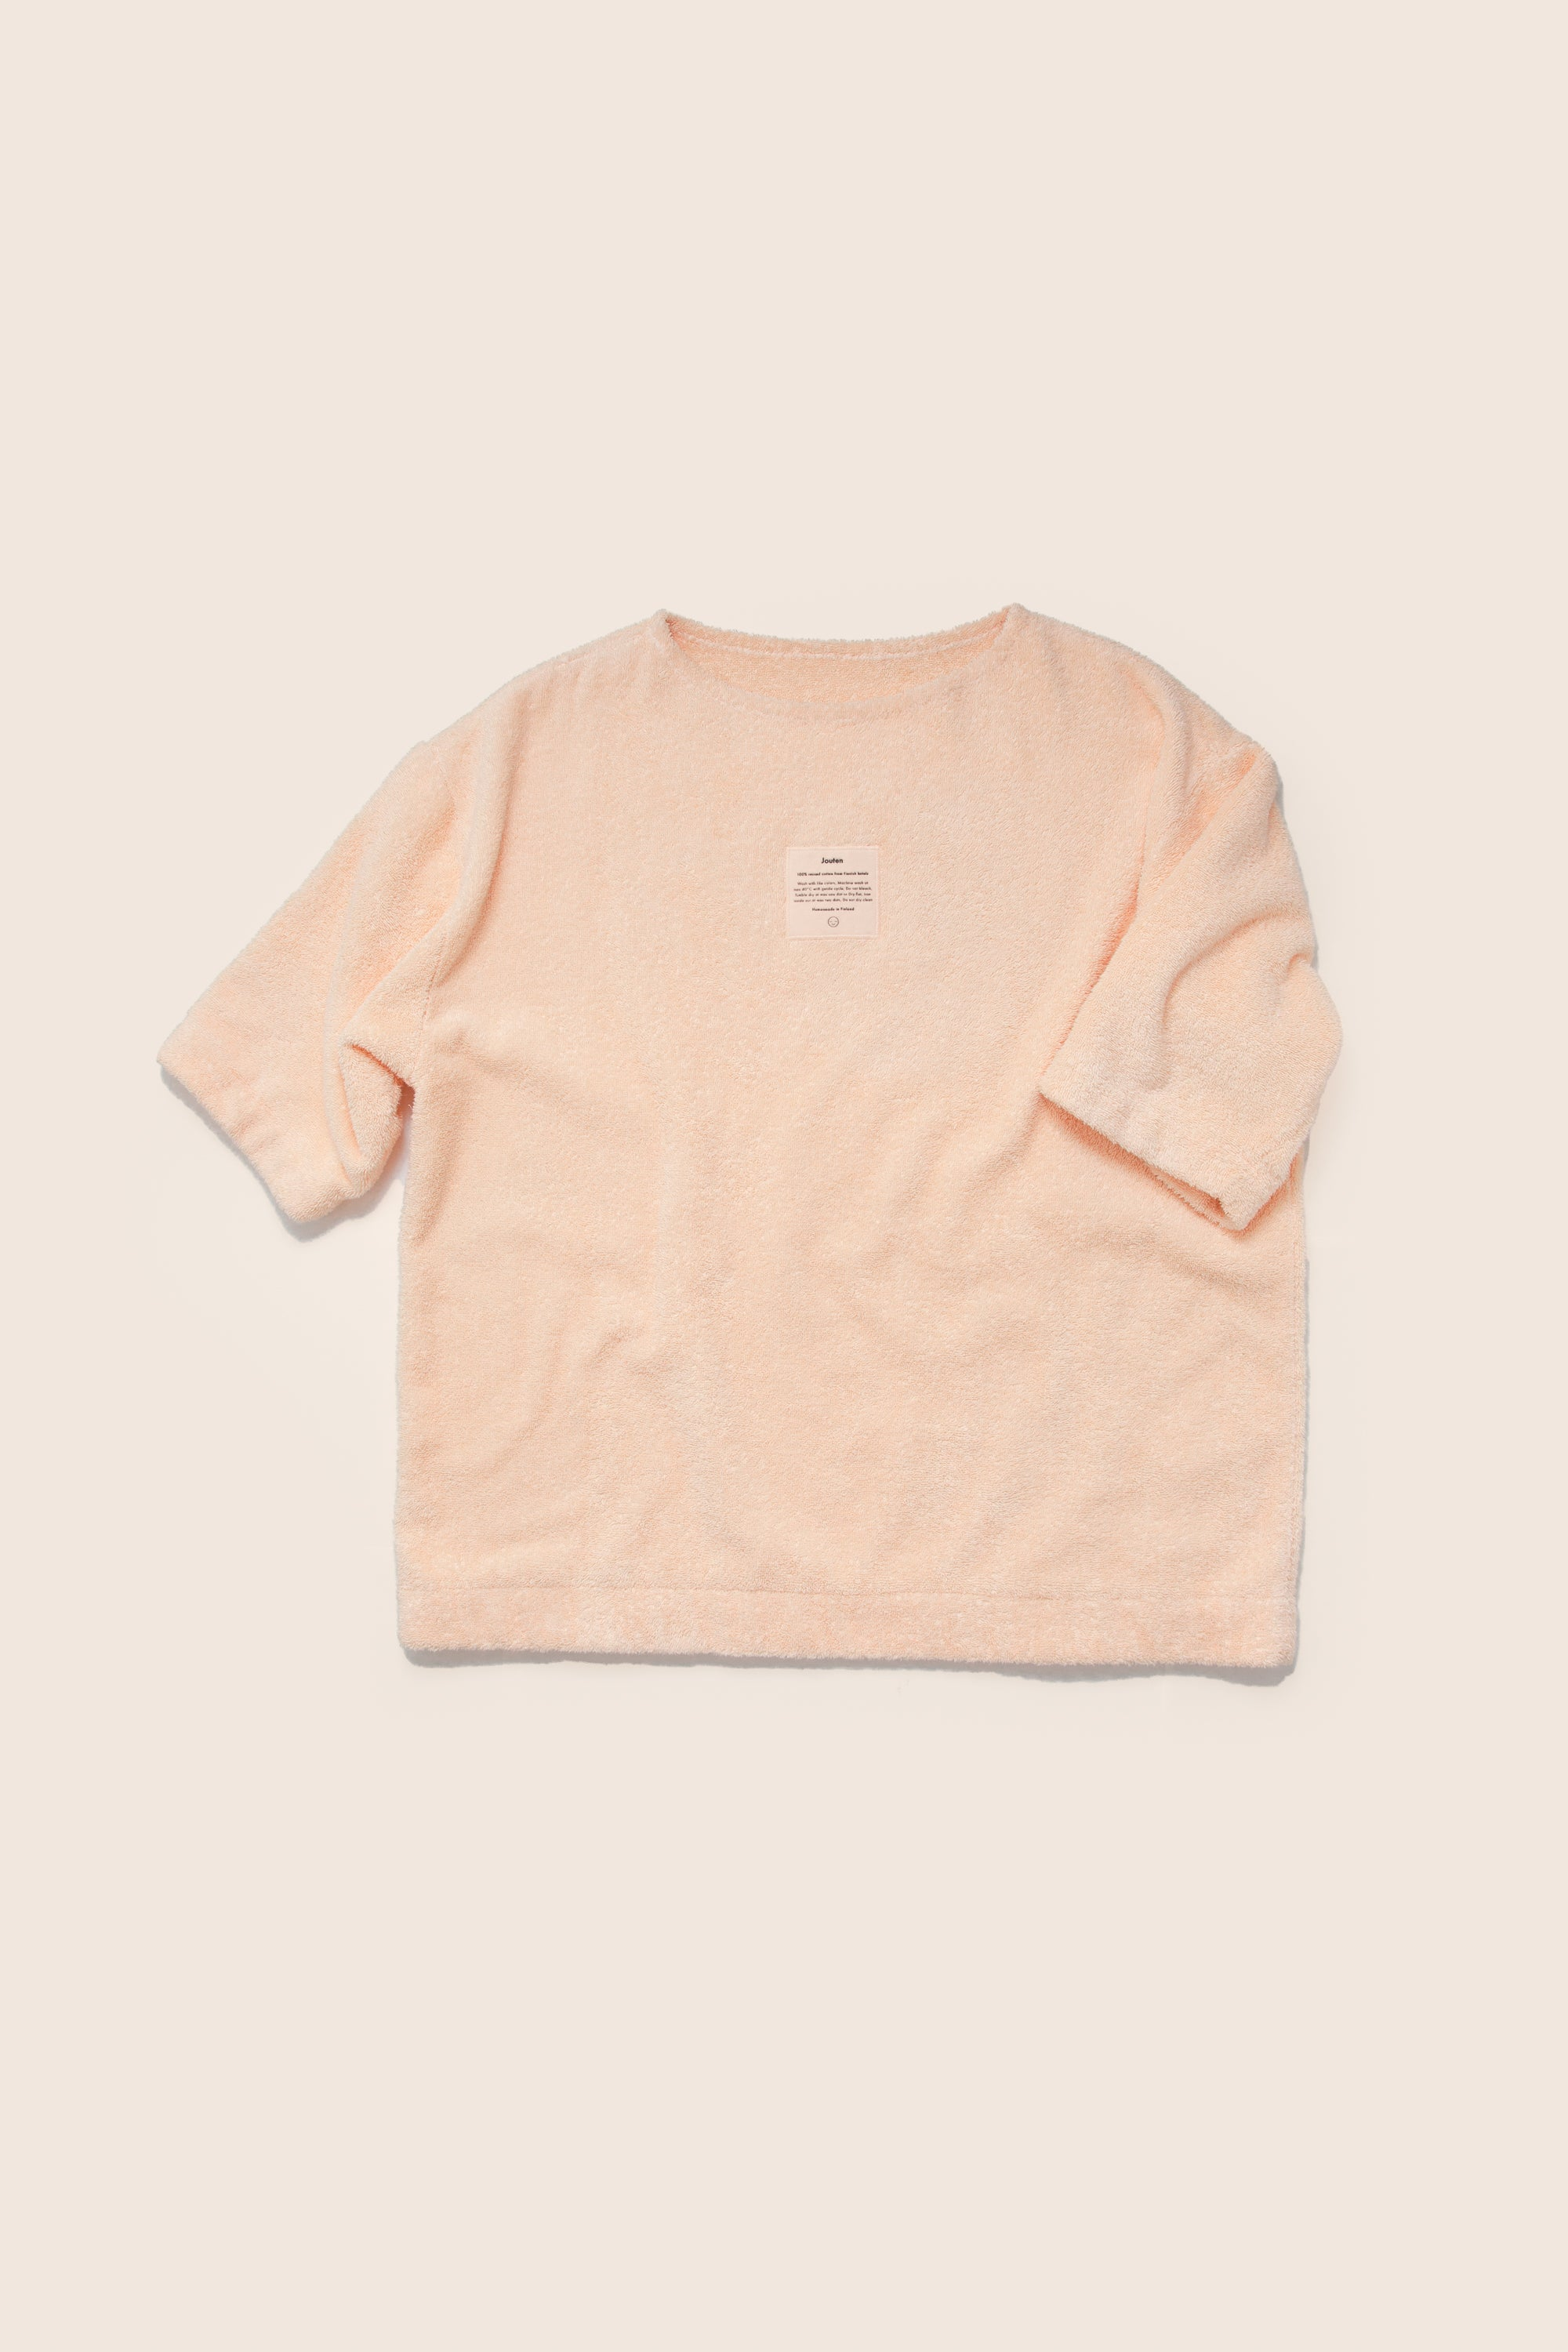 Unisex Terry Half Sleeve in Peach